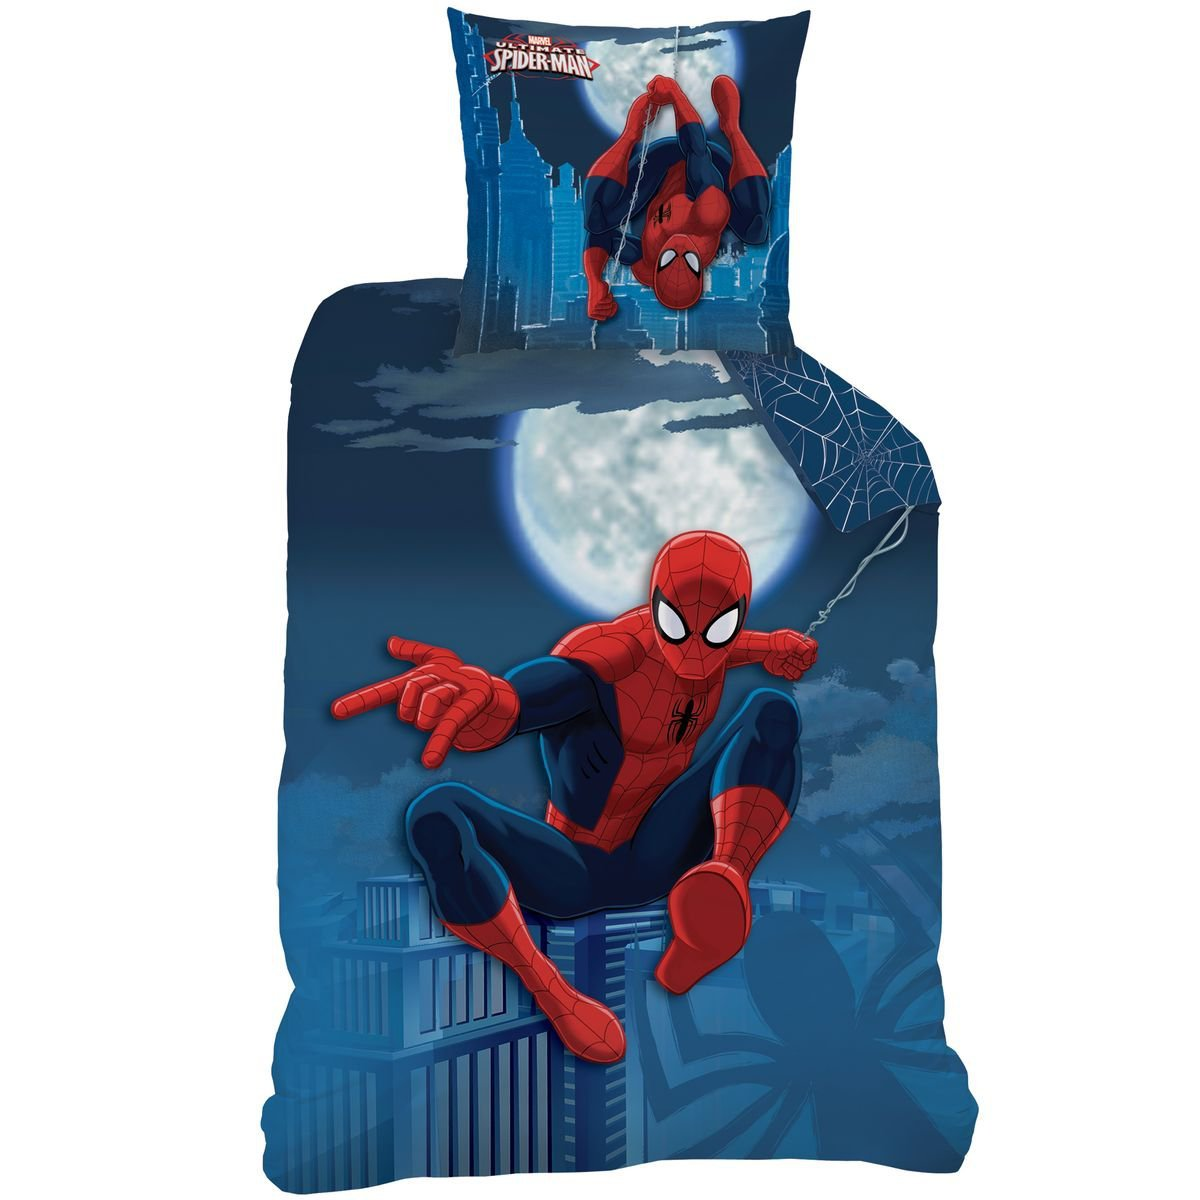 Spider-Man - Duvet Cover (140x200) + Pillow Case (63x63) - Bedding set MOONLIGHT CTI